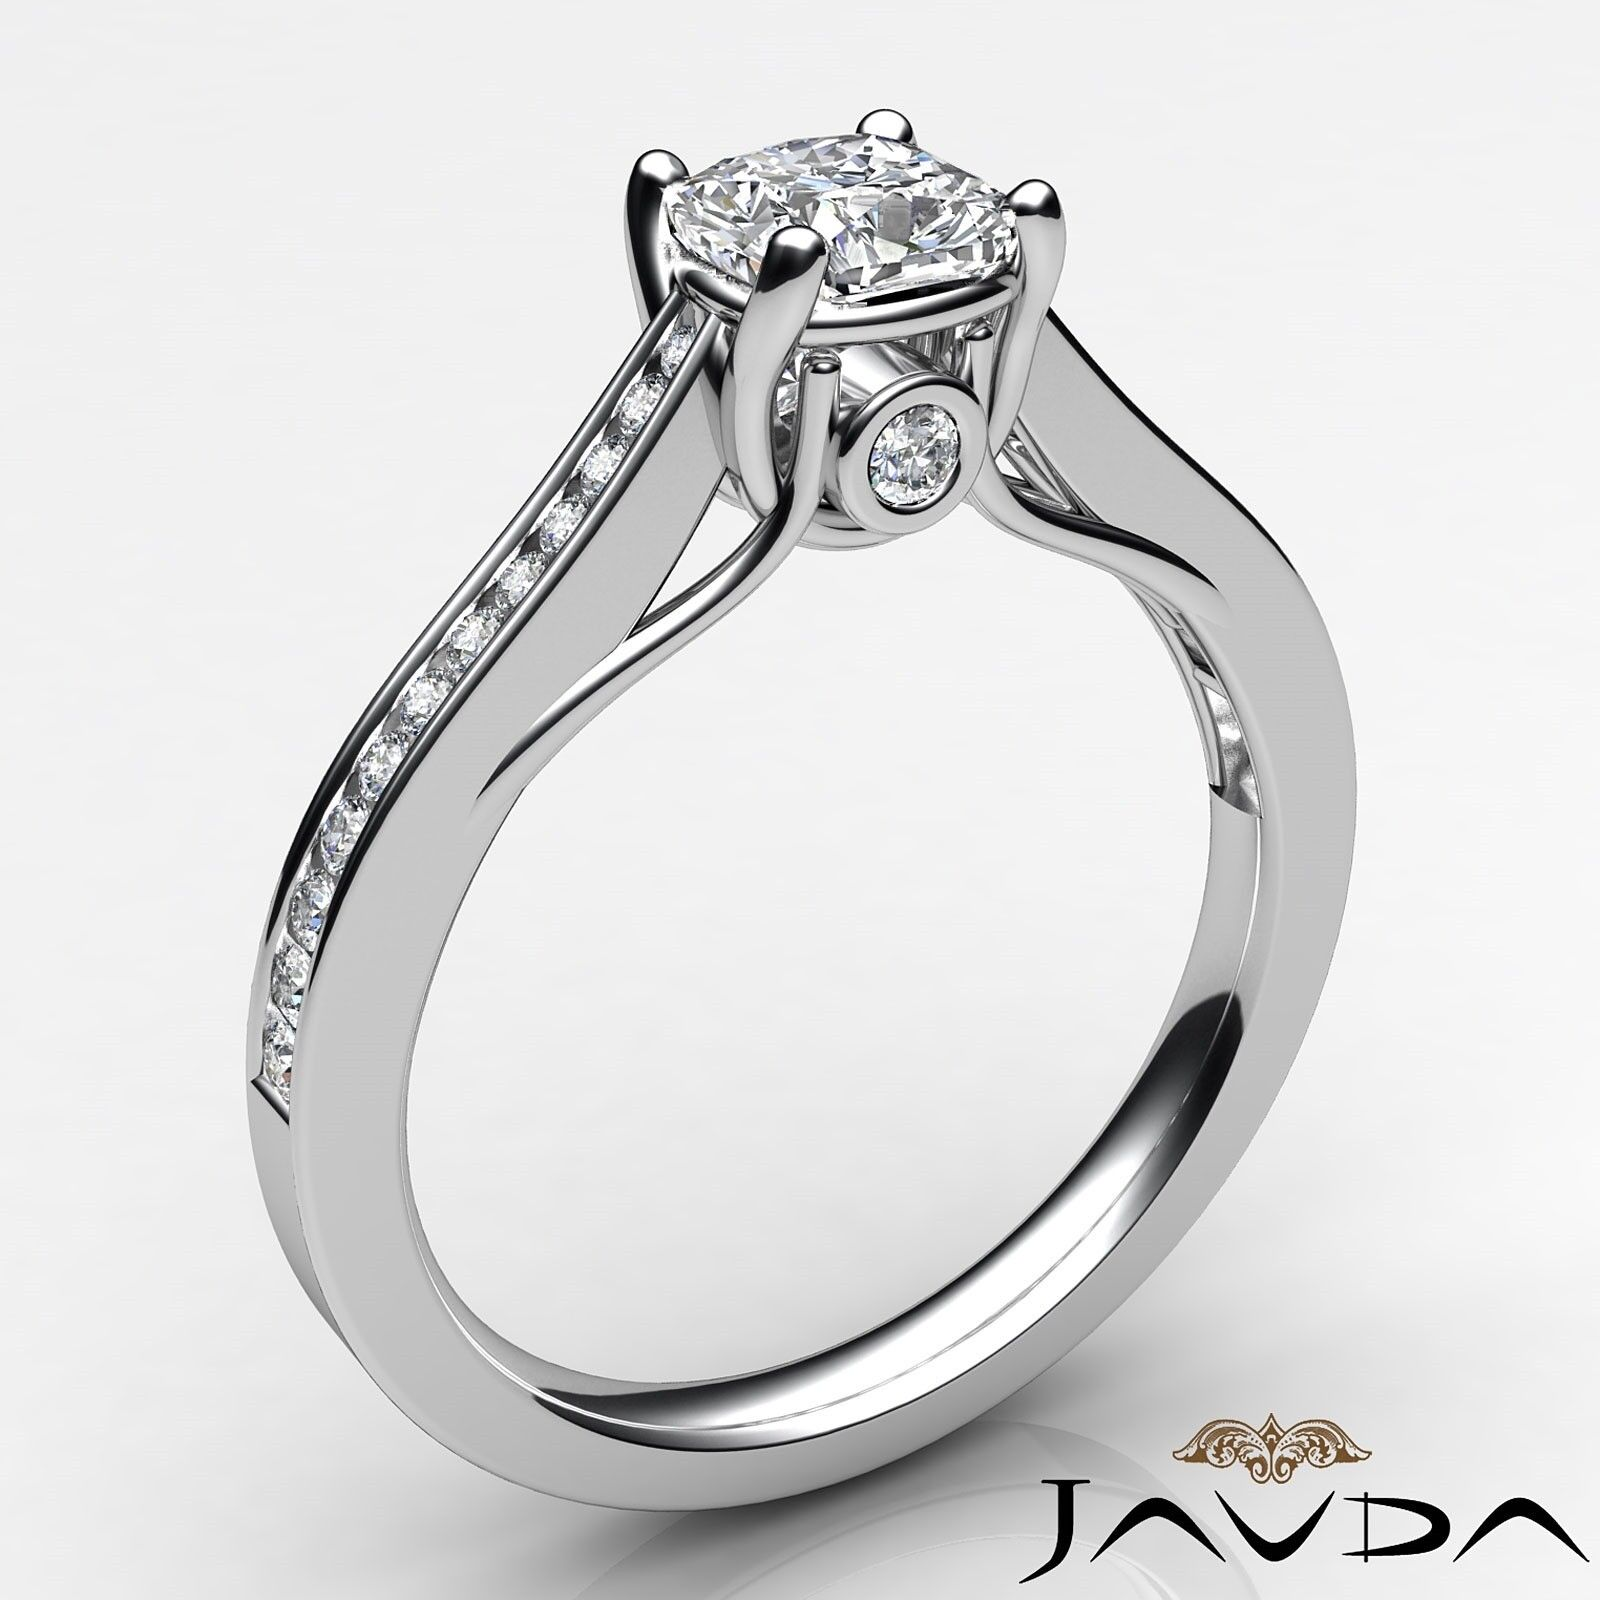 1.2ctw Channel Bezel Prong Set Cushion Diamond Engagement Ring GIA M-SI2 W Gold 1